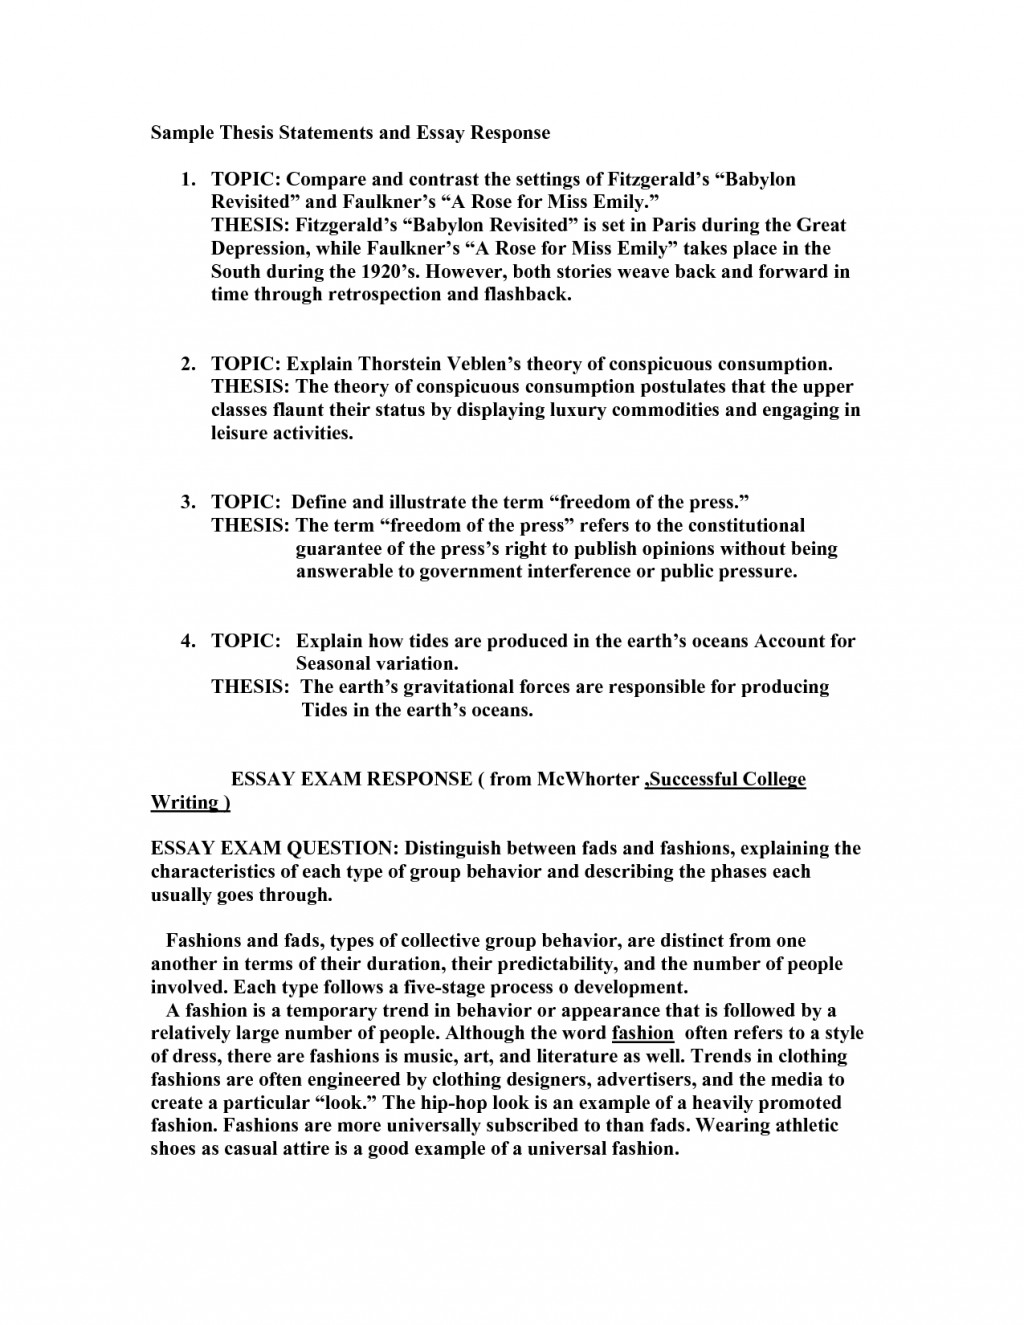 004 6na1pphnb7 Thesis In Essay Sensational Example Beauty Definition Statement Examples Based Paper Large